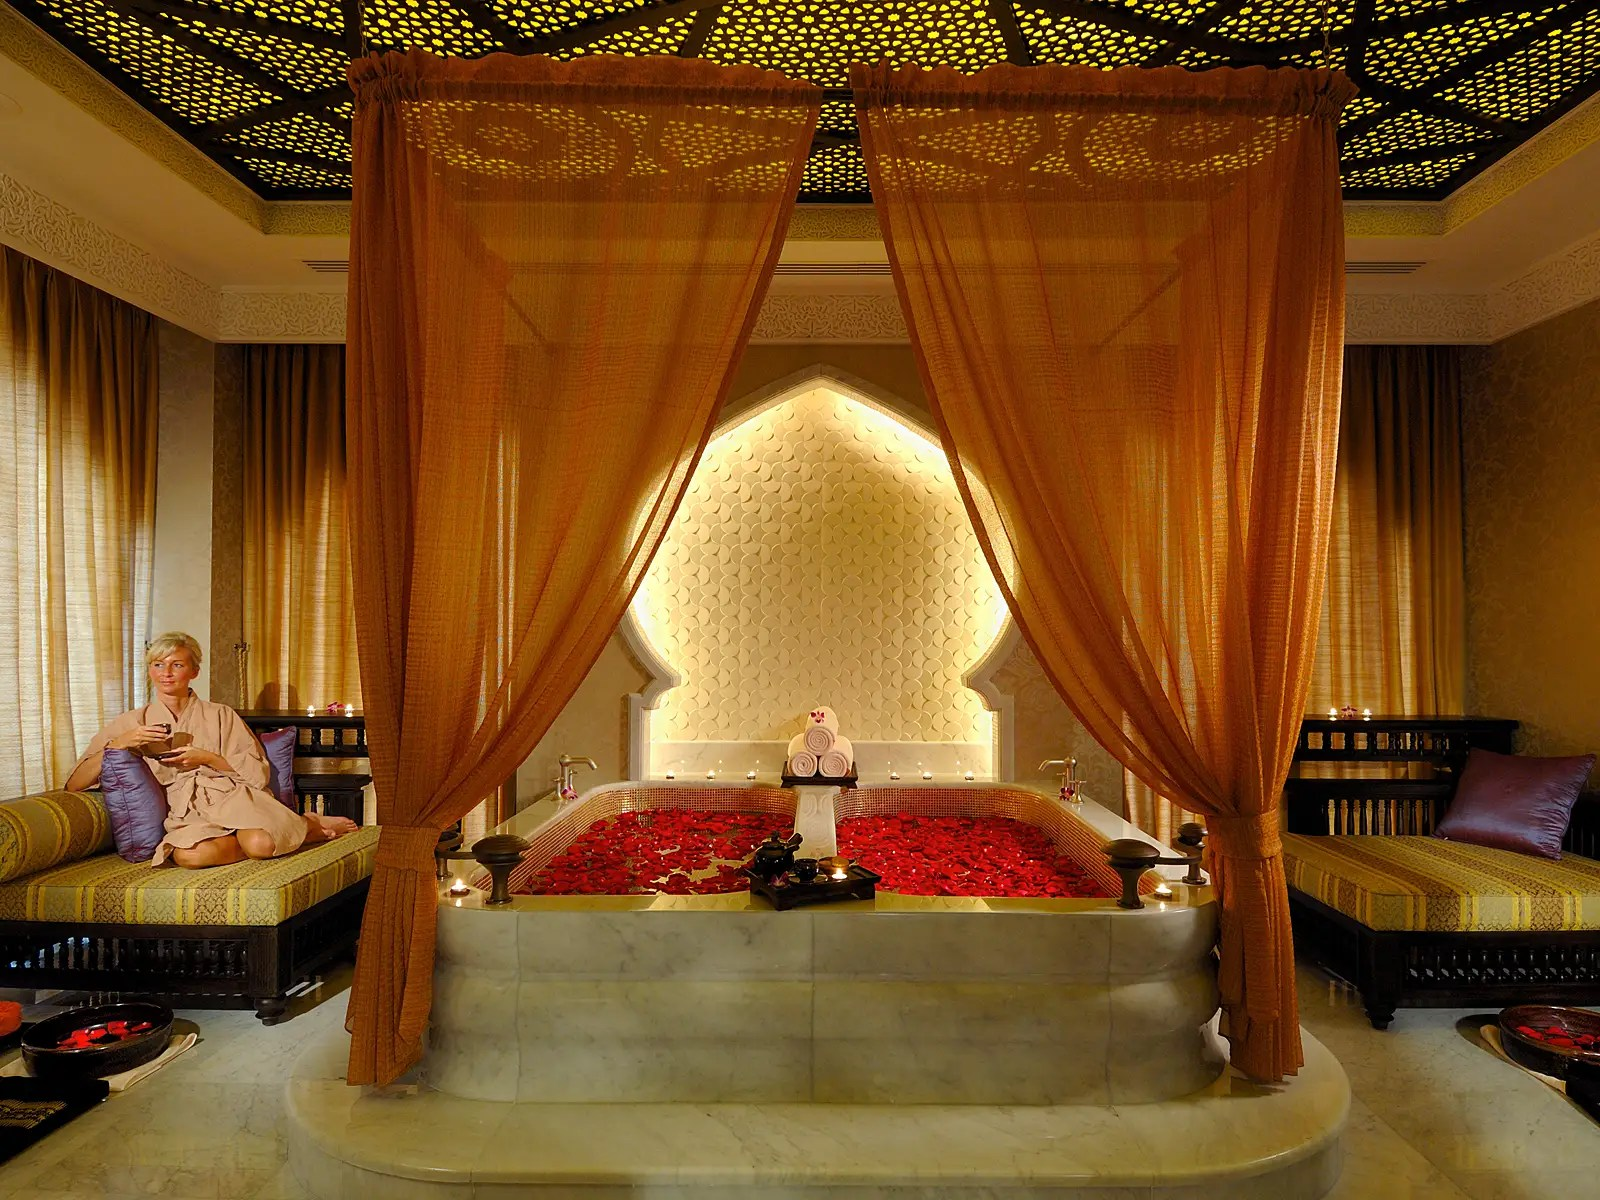 """The luxury spa has more than 30 treatments, including for men, couples, and so-called """"spa journeys"""" that draw on ancient as well as modern practices."""